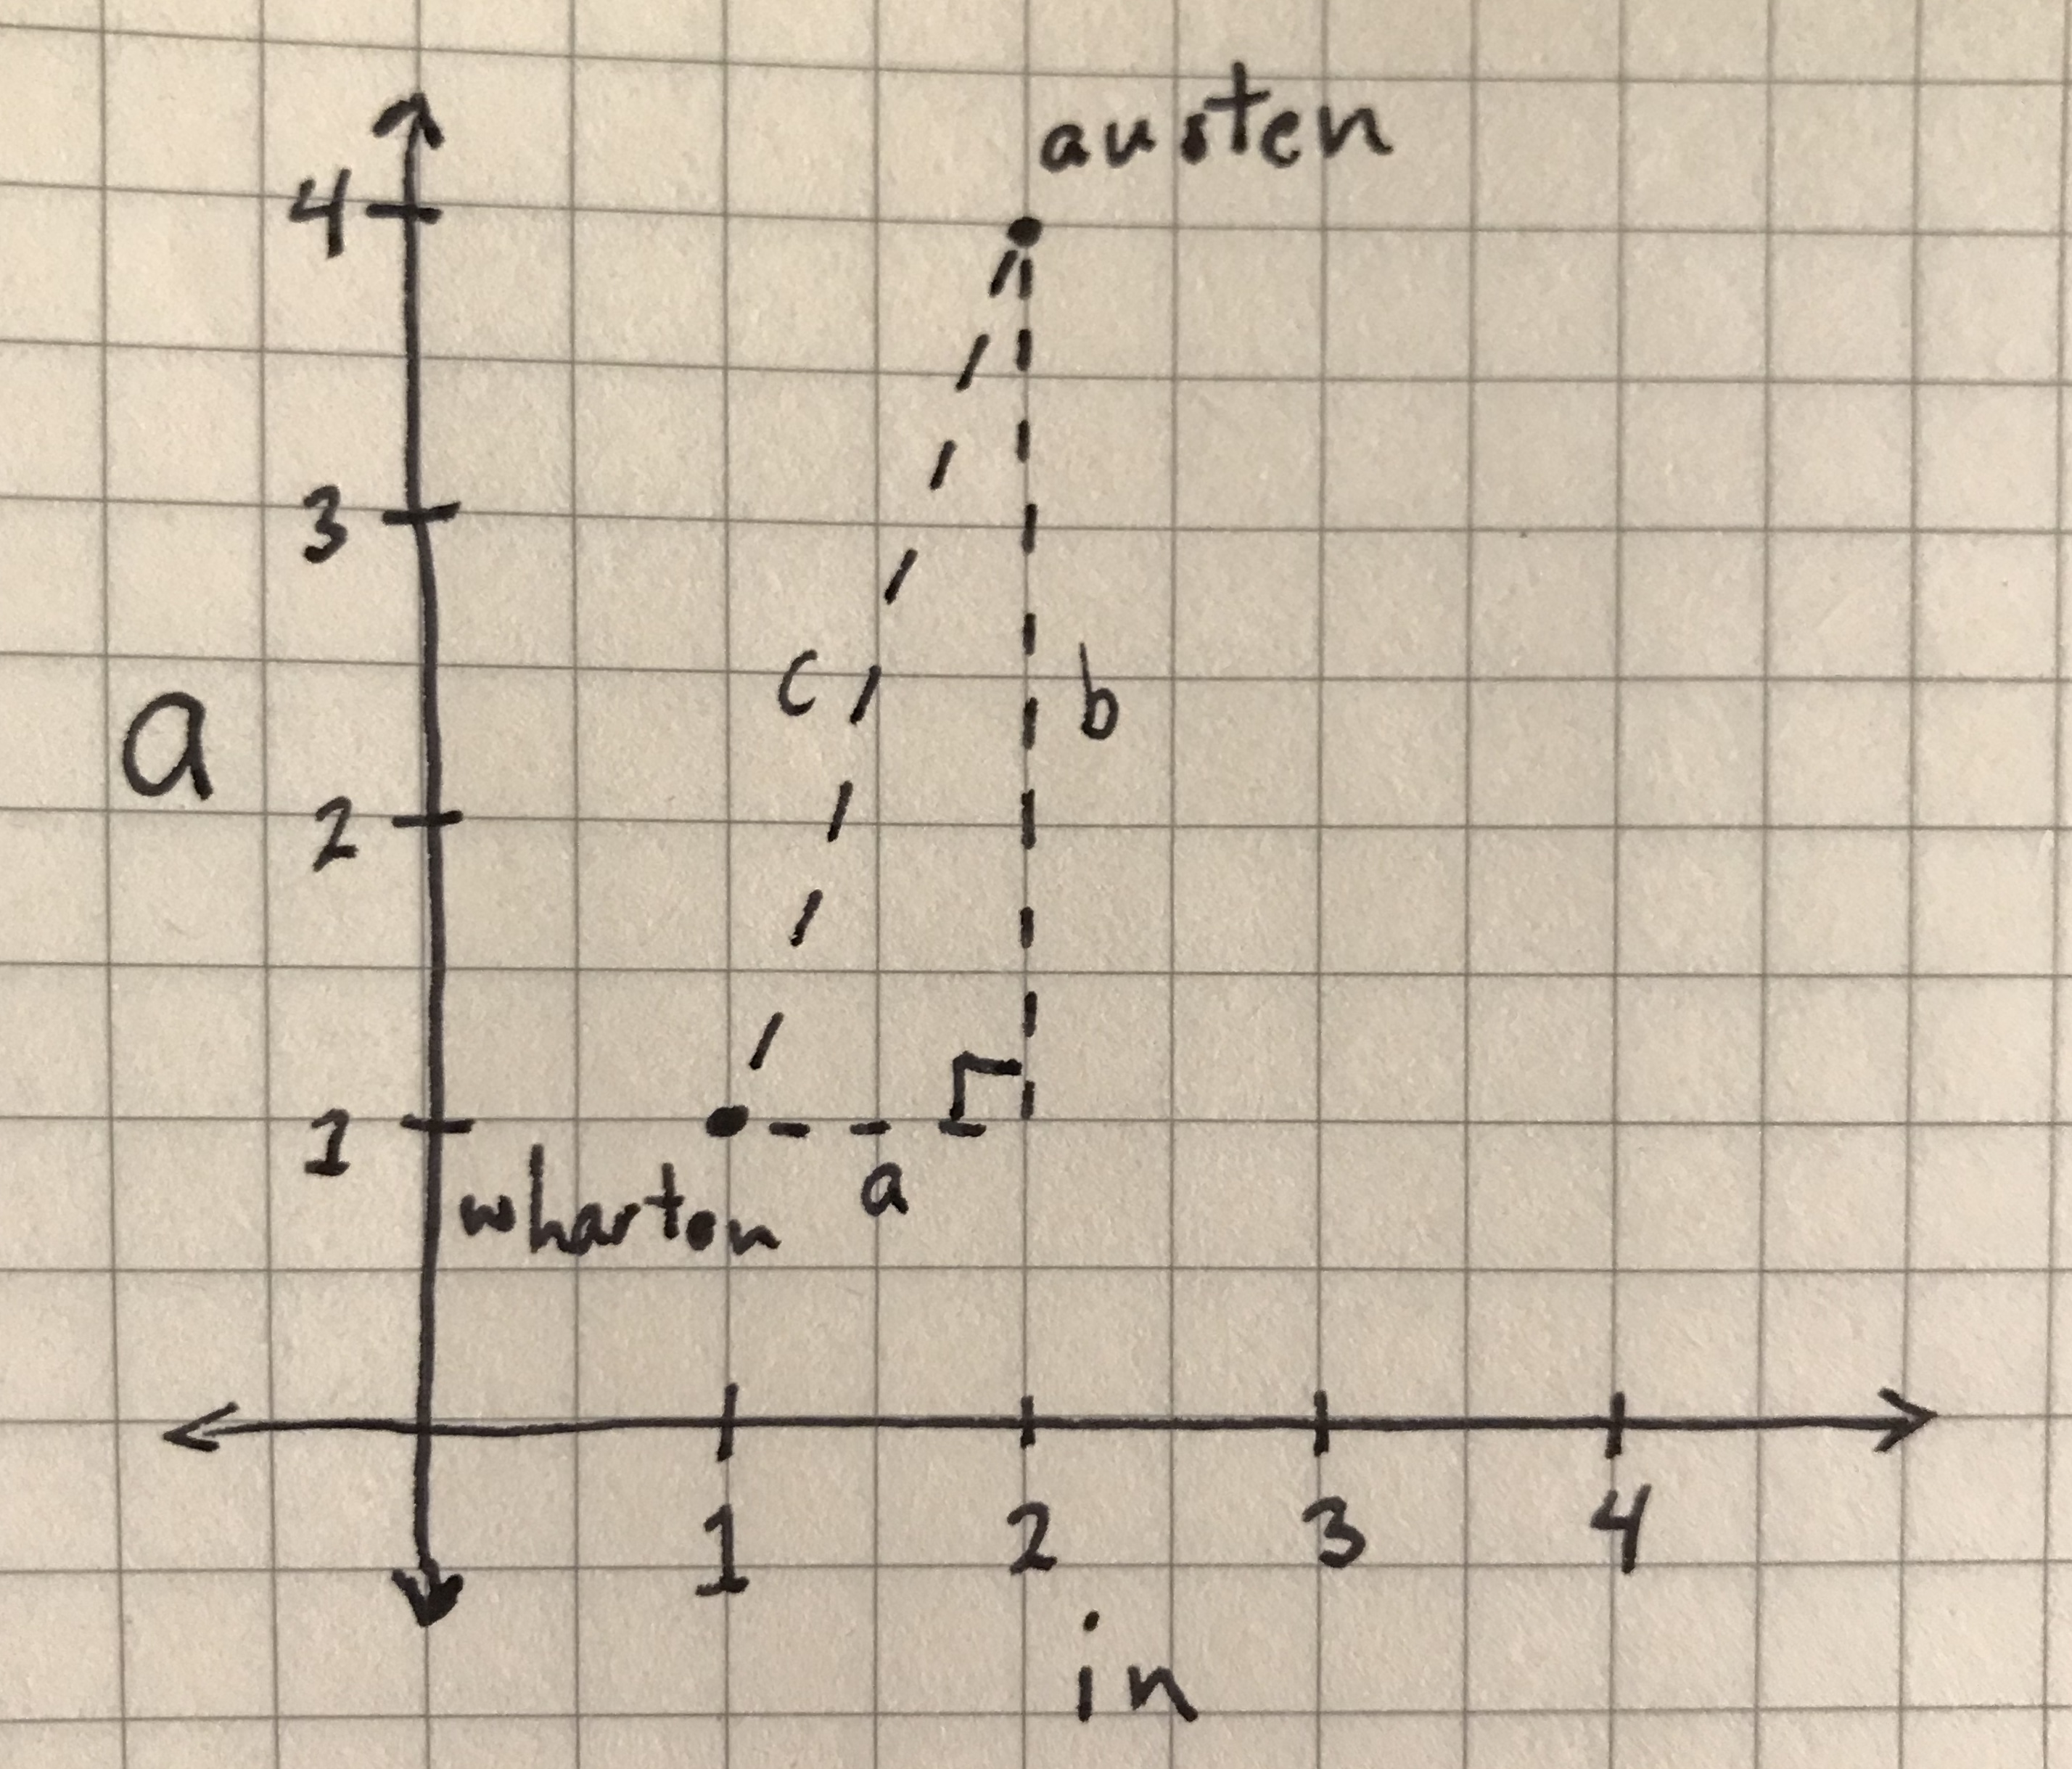 The distance between 'austen' and 'wharton' data points using Euclidean distance.